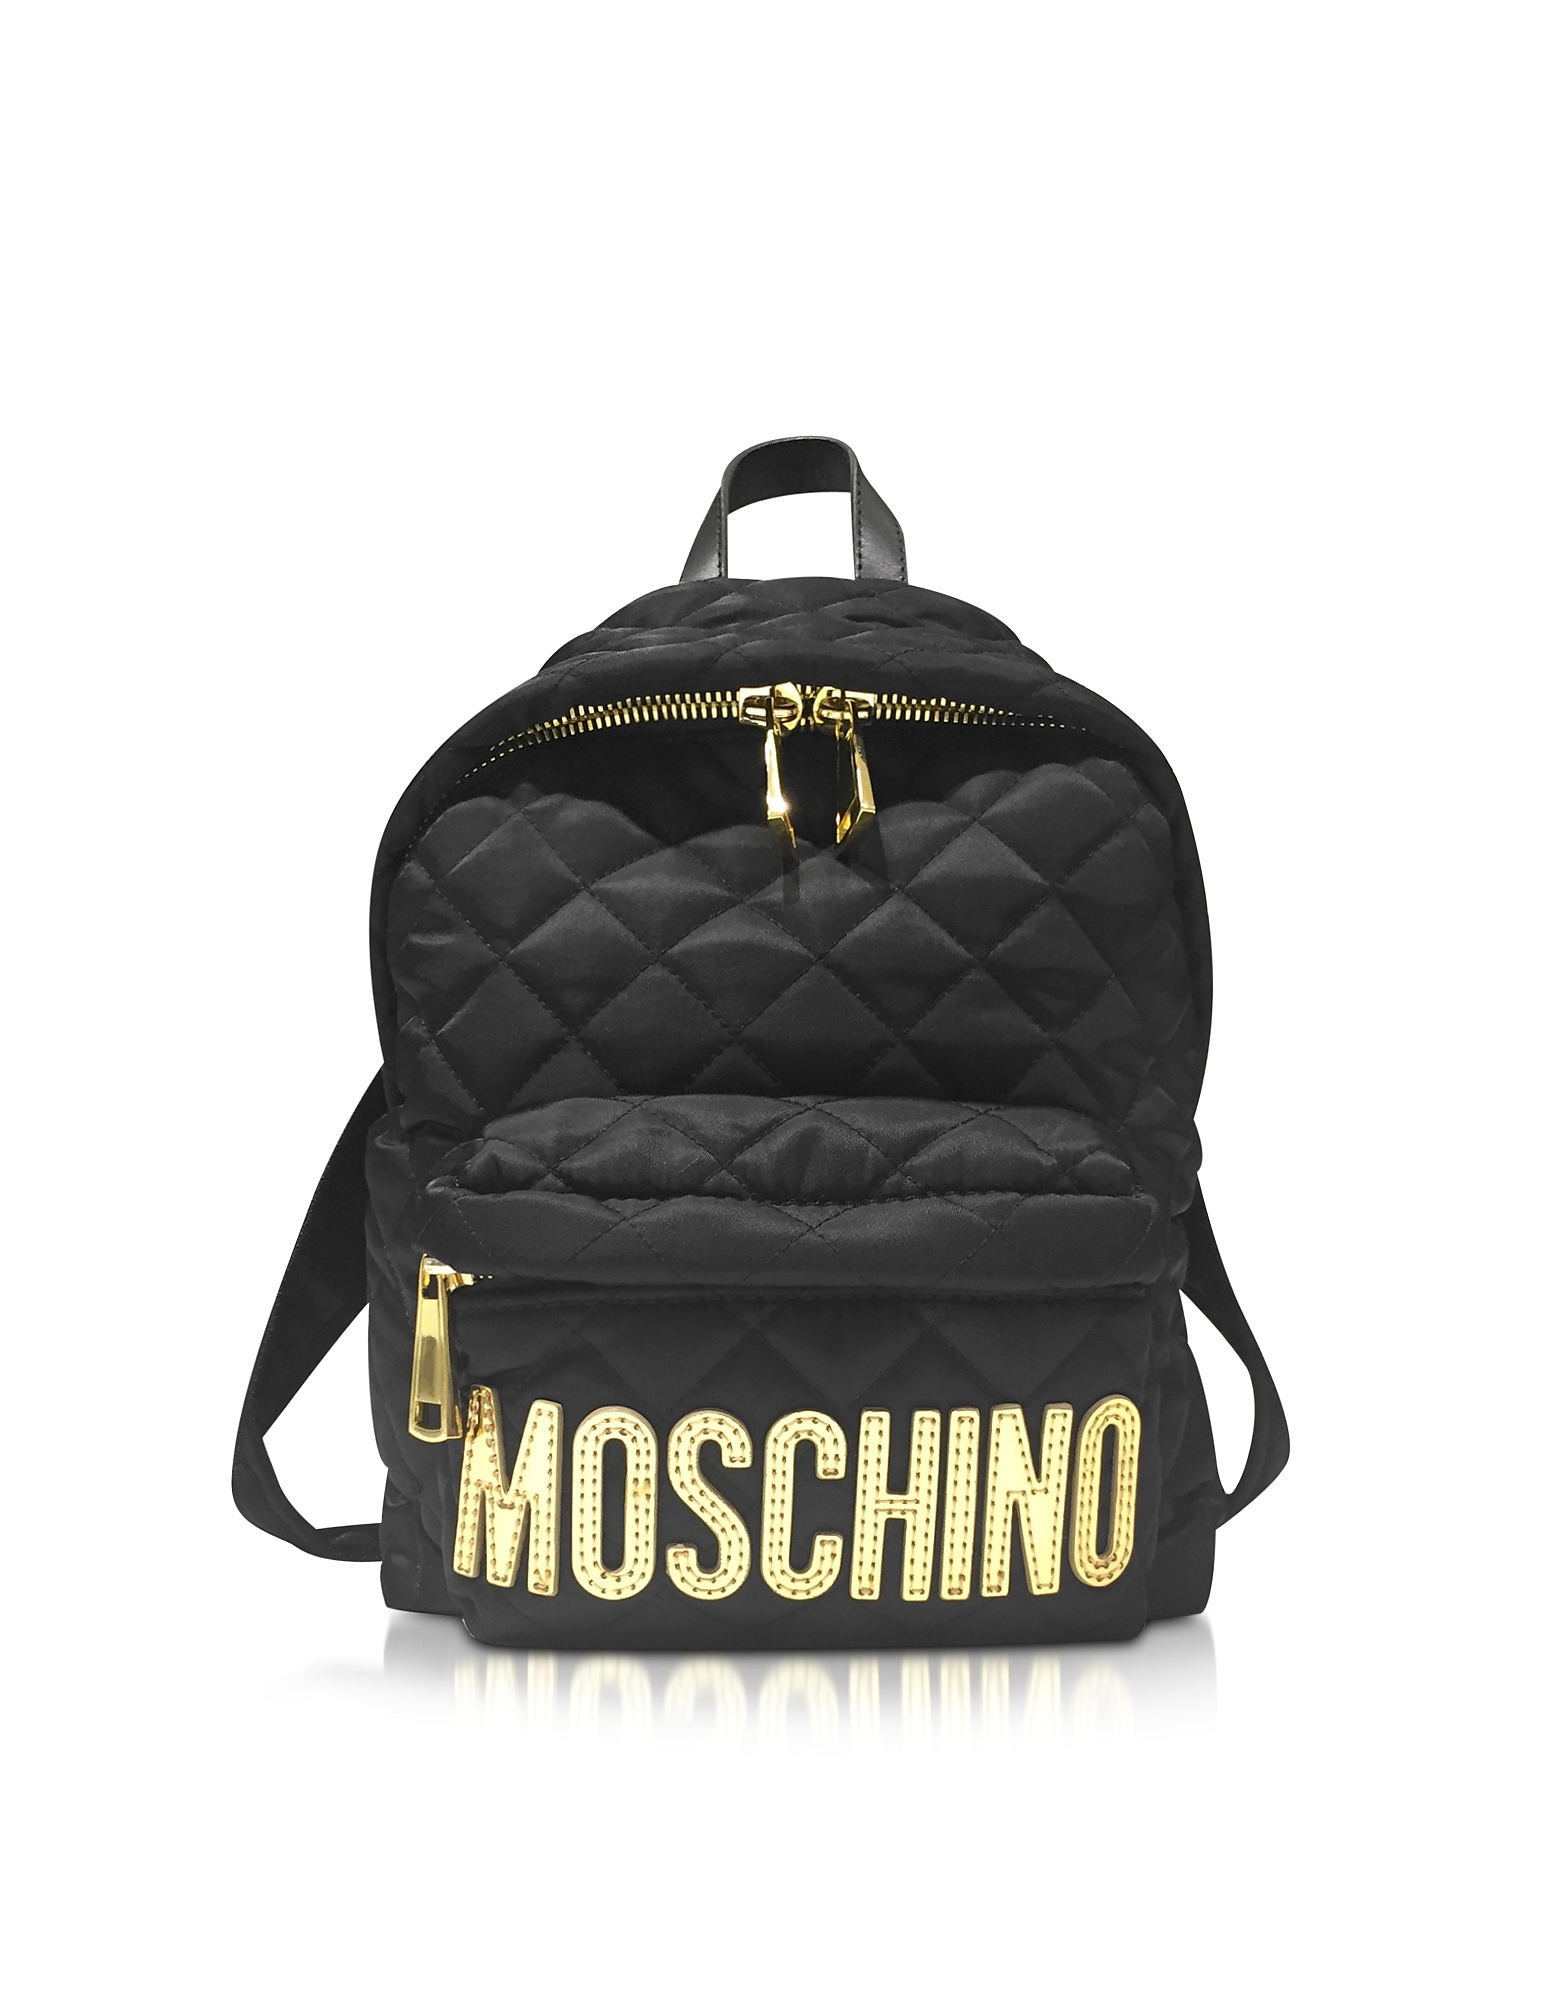 Black Quilted Nylon Small Backpack w/Golden Logo